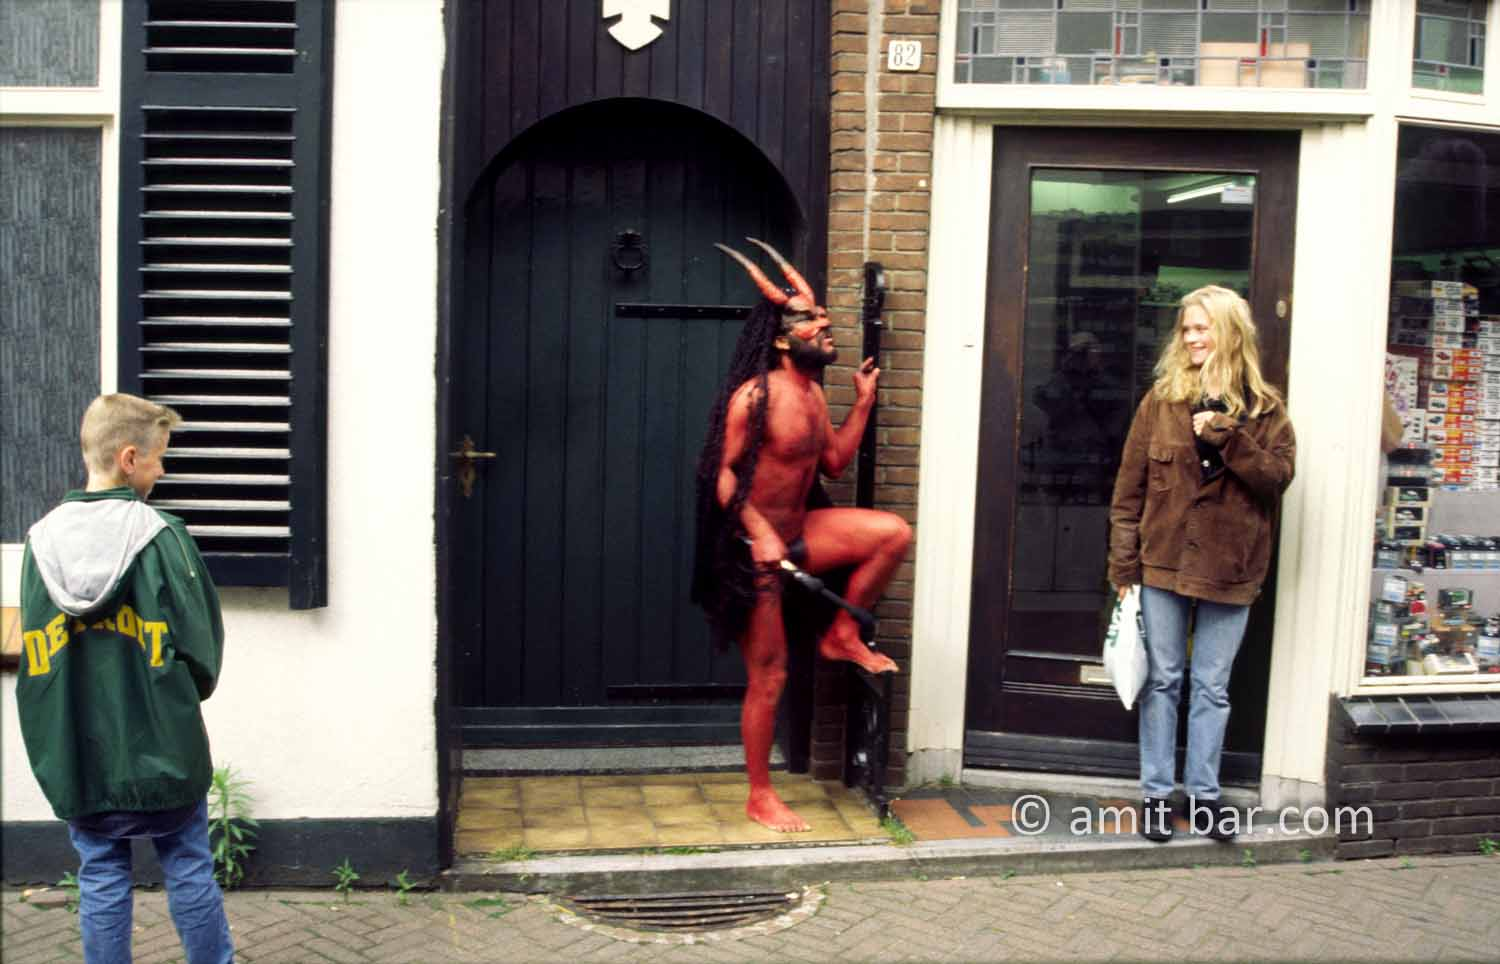 Who's afraid of the devil?: Street theater festival in Doetinchem